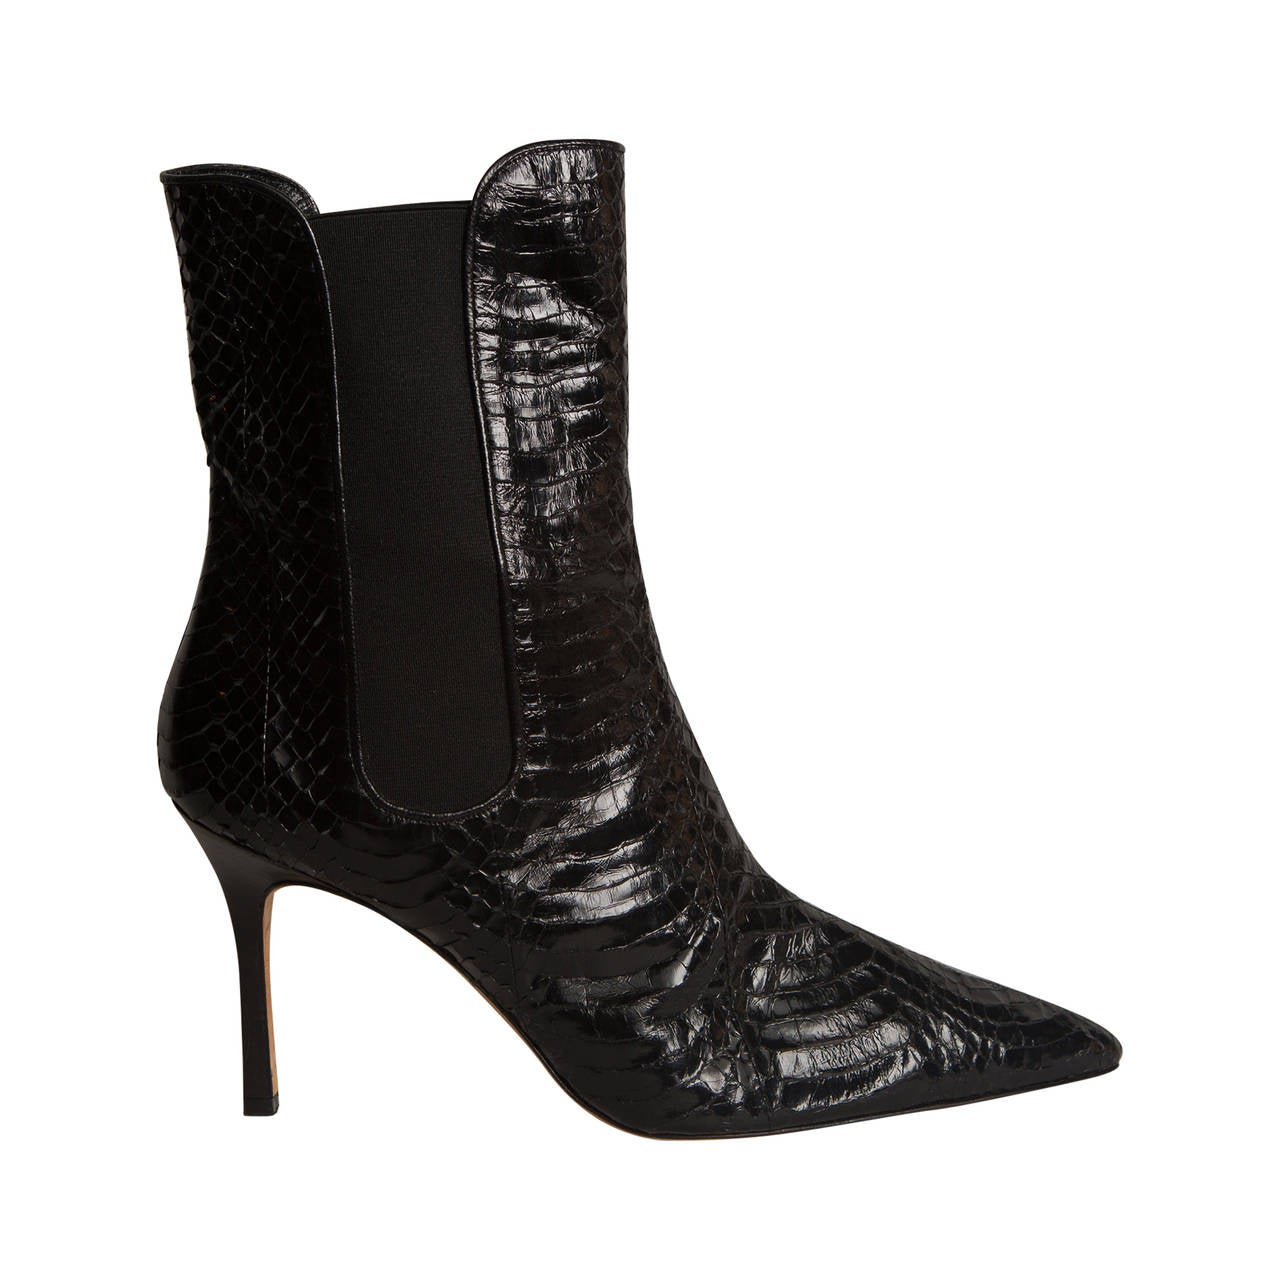 Manolo Blahnik Black Snakeskin Booties